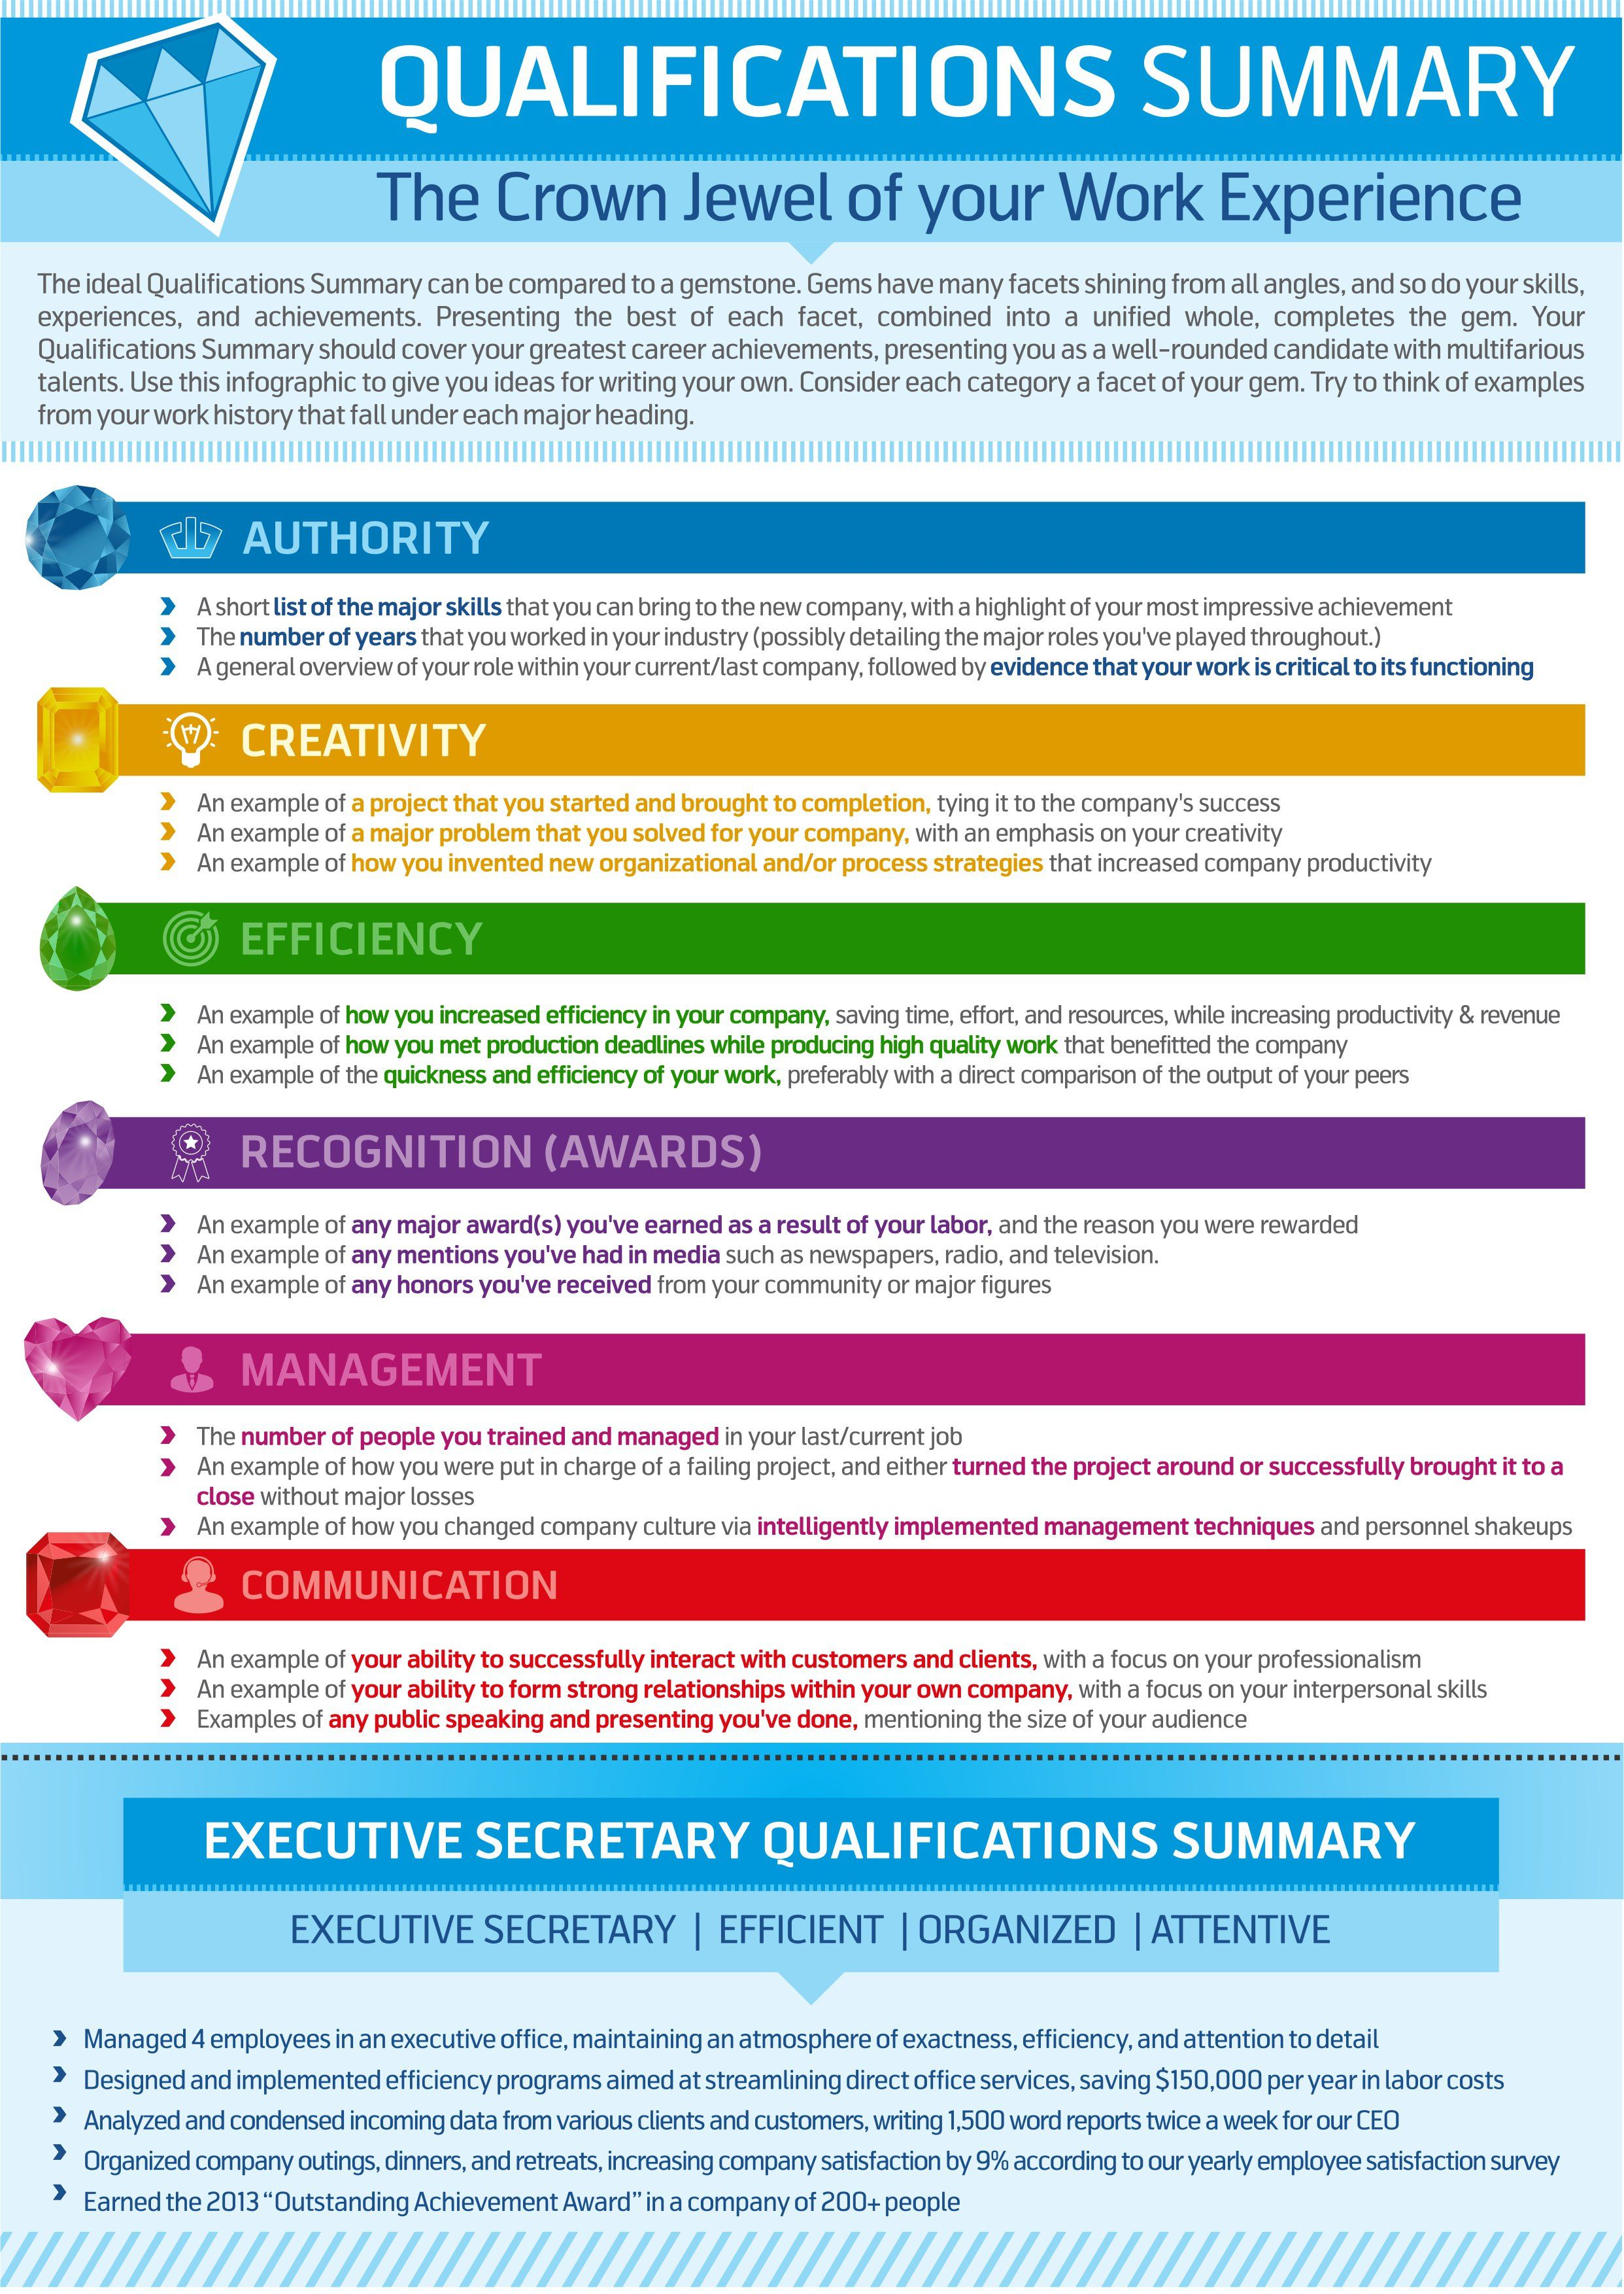 Qualifications Summary Infographic  A Time For Change